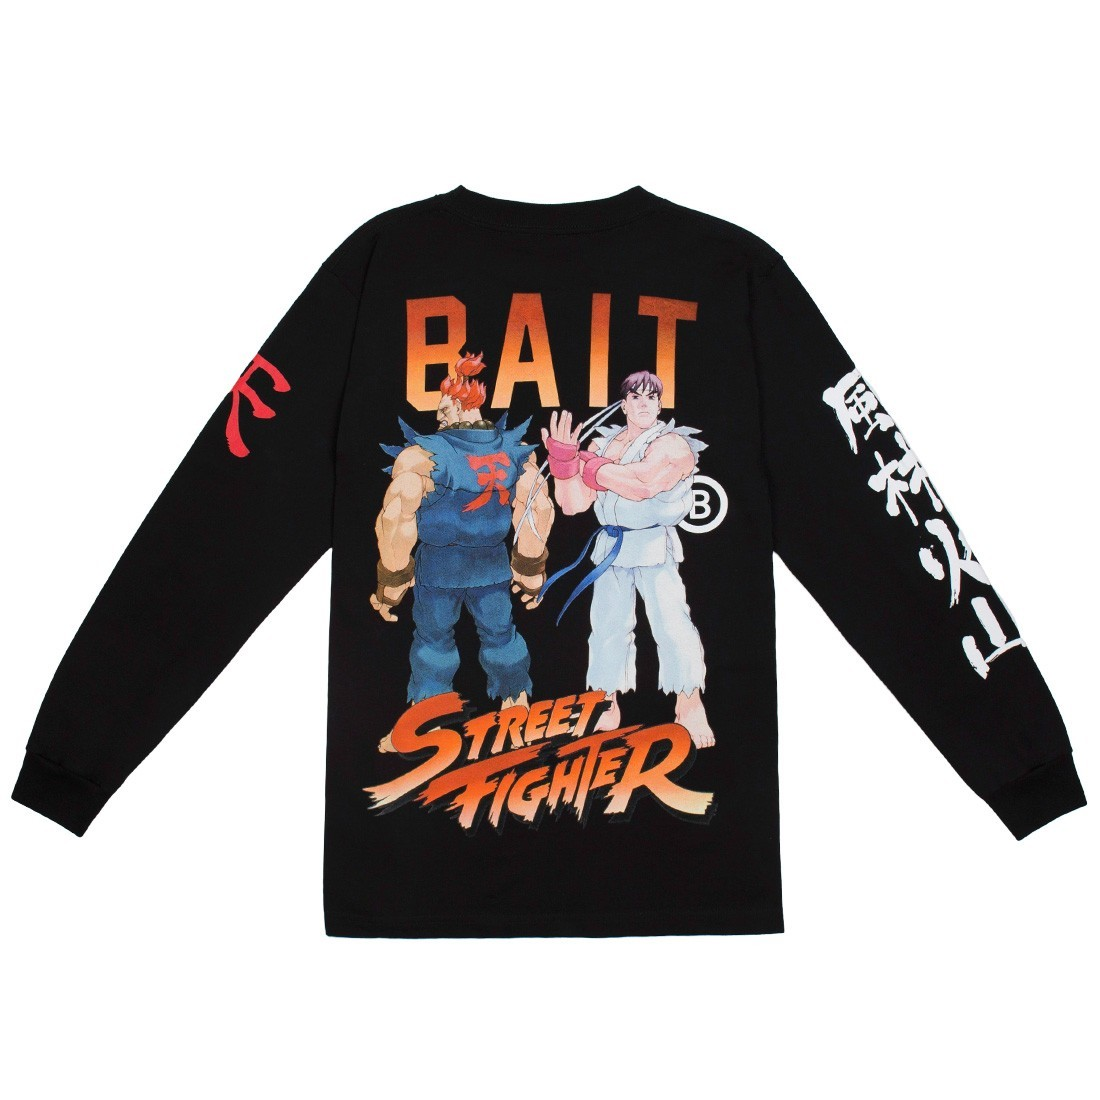 BAIT x Street Fighter Men Akuma Versus Ryu Stance Long Sleeve Tee (black)